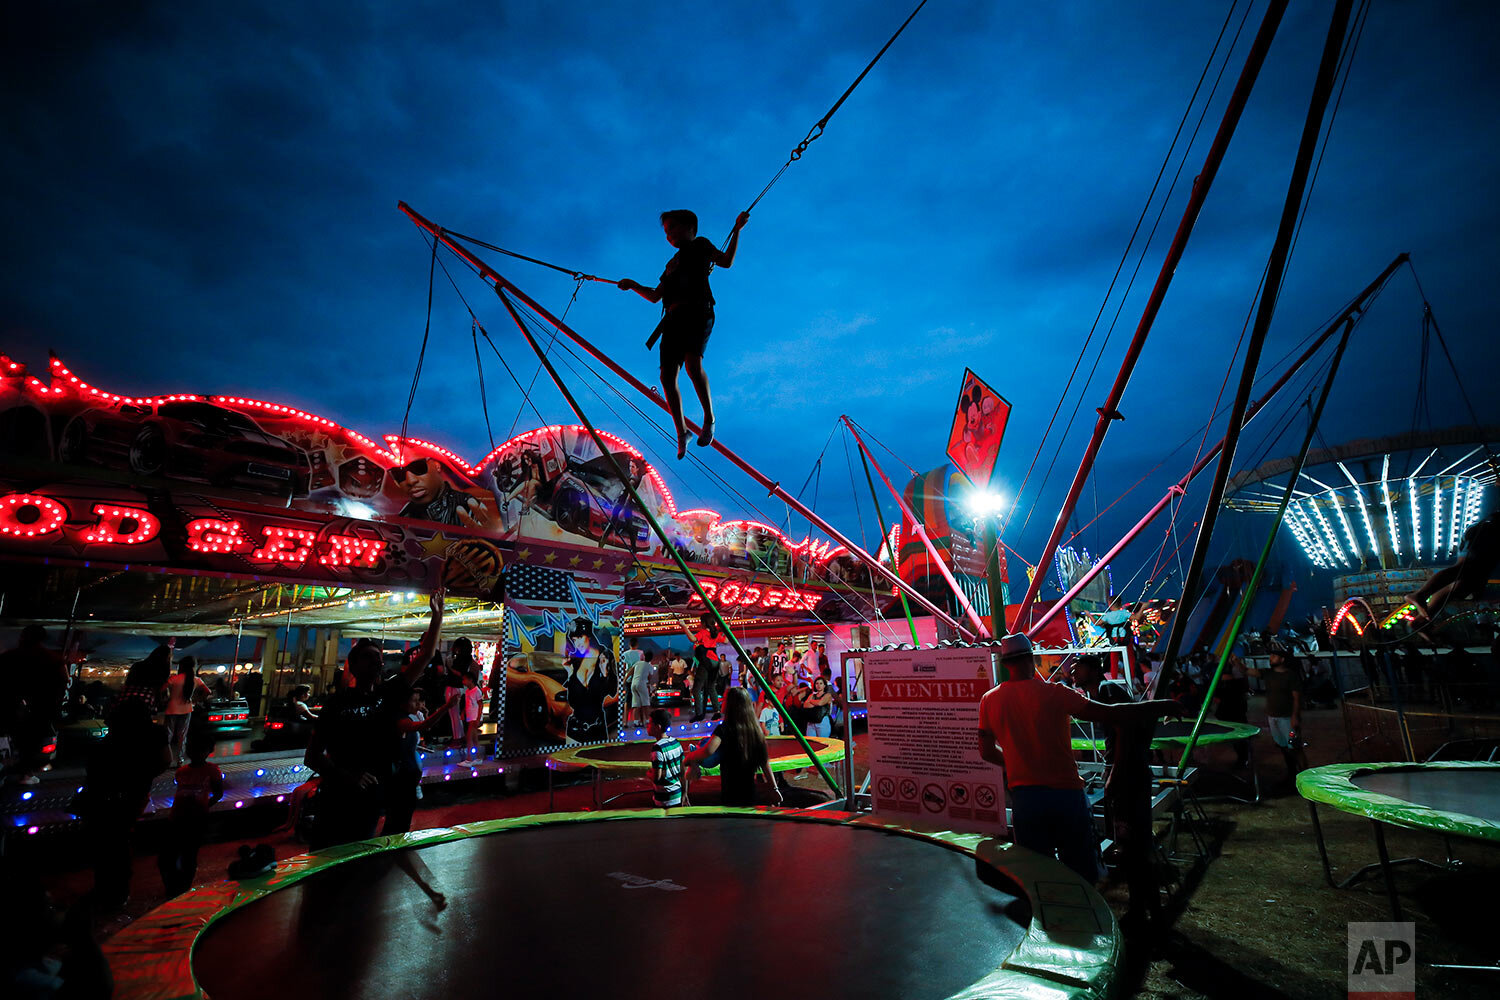 A child jumps on a trampoline at an autumn fair in Titu, southern Romania, Sept. 14, 2019. (AP Photo/Vadim Ghirda)